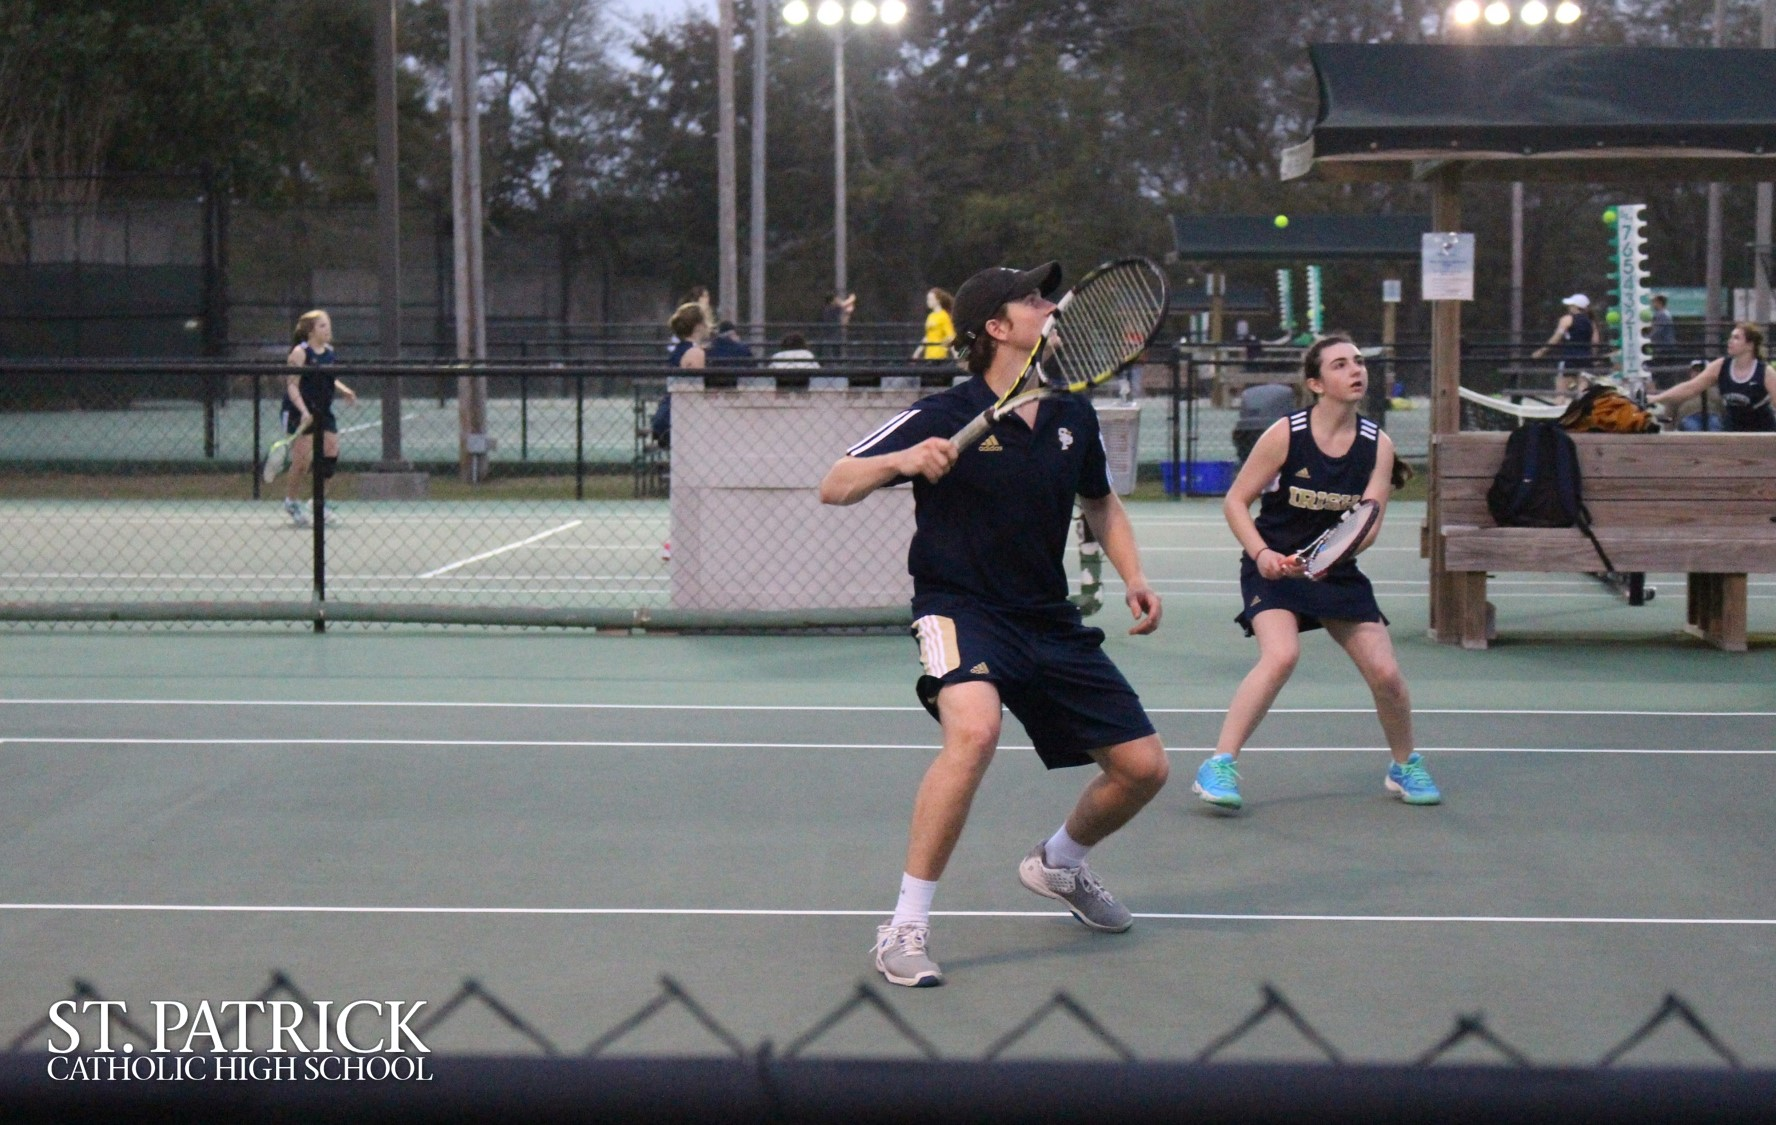 Tennis match against Gautier High